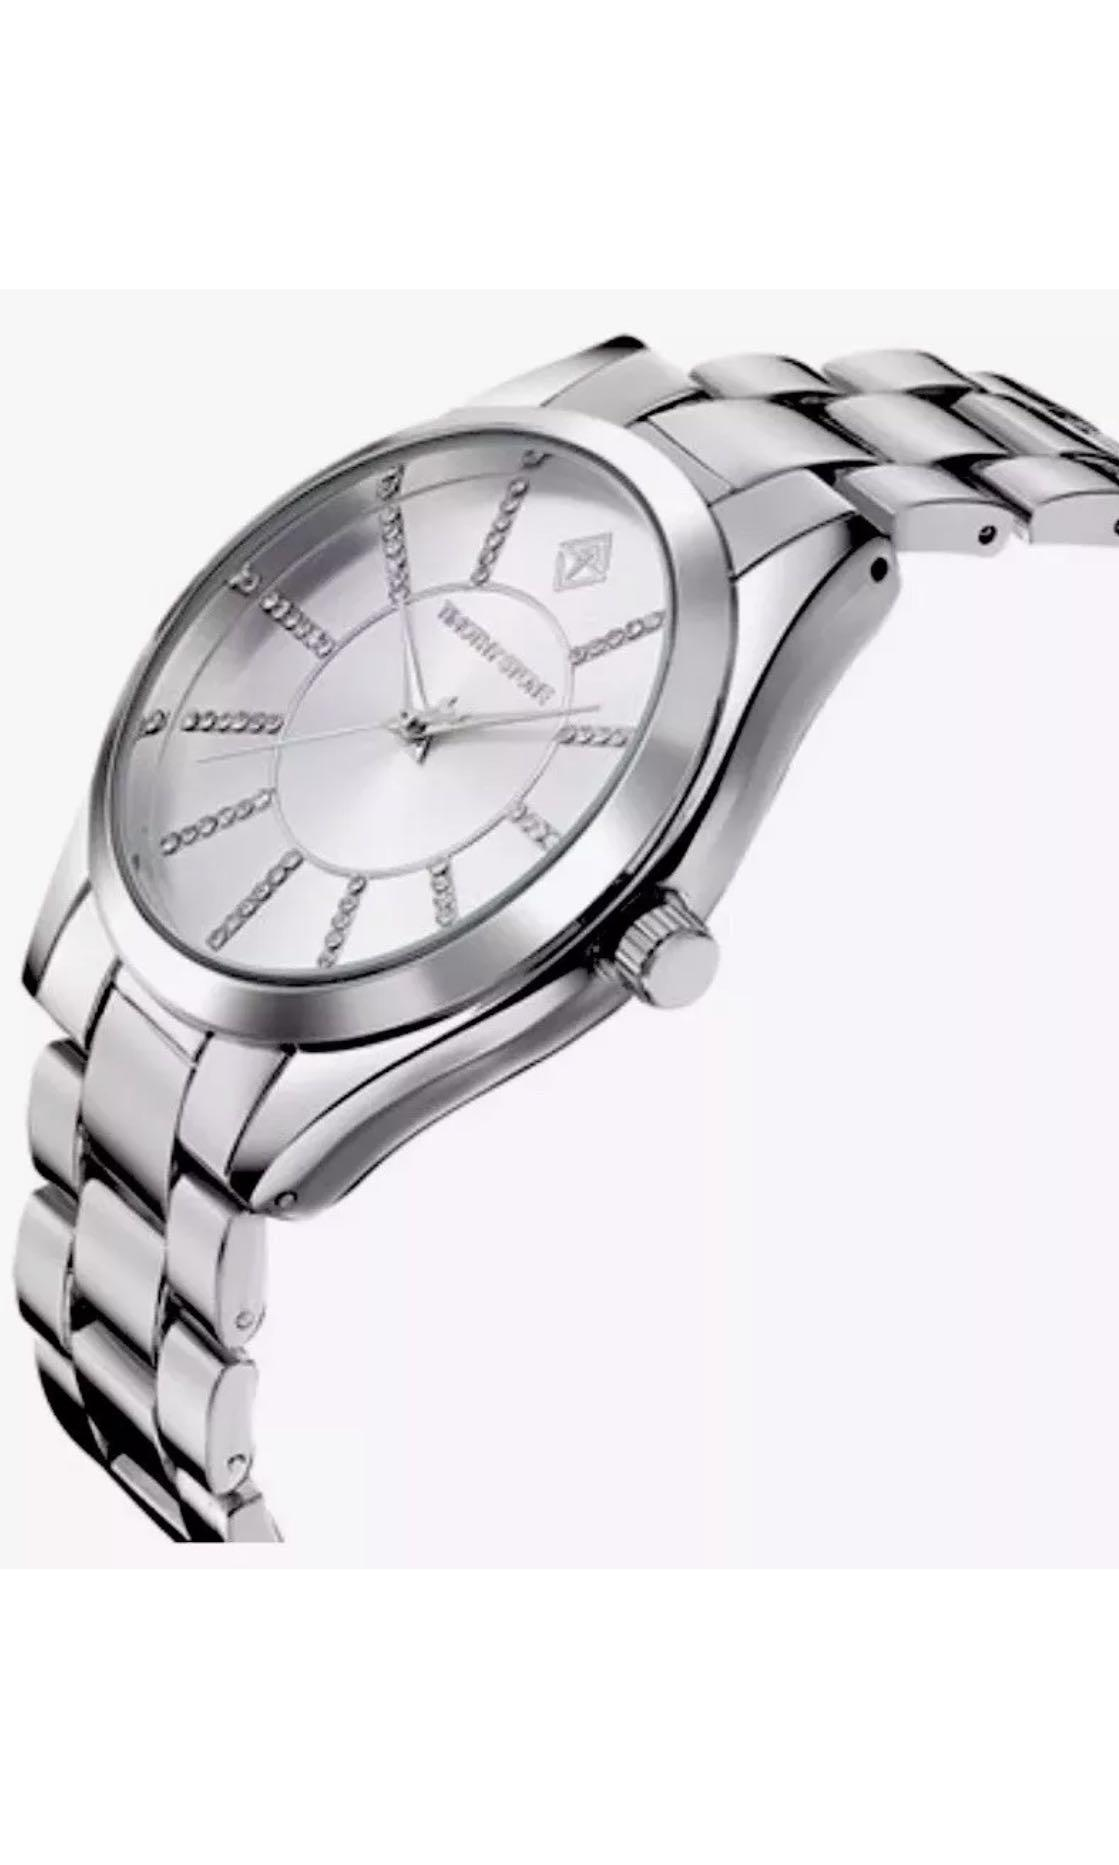 Ladies TIMOTHY STONE Charme Silver Stainless Steel Swarovski Watch. New $240